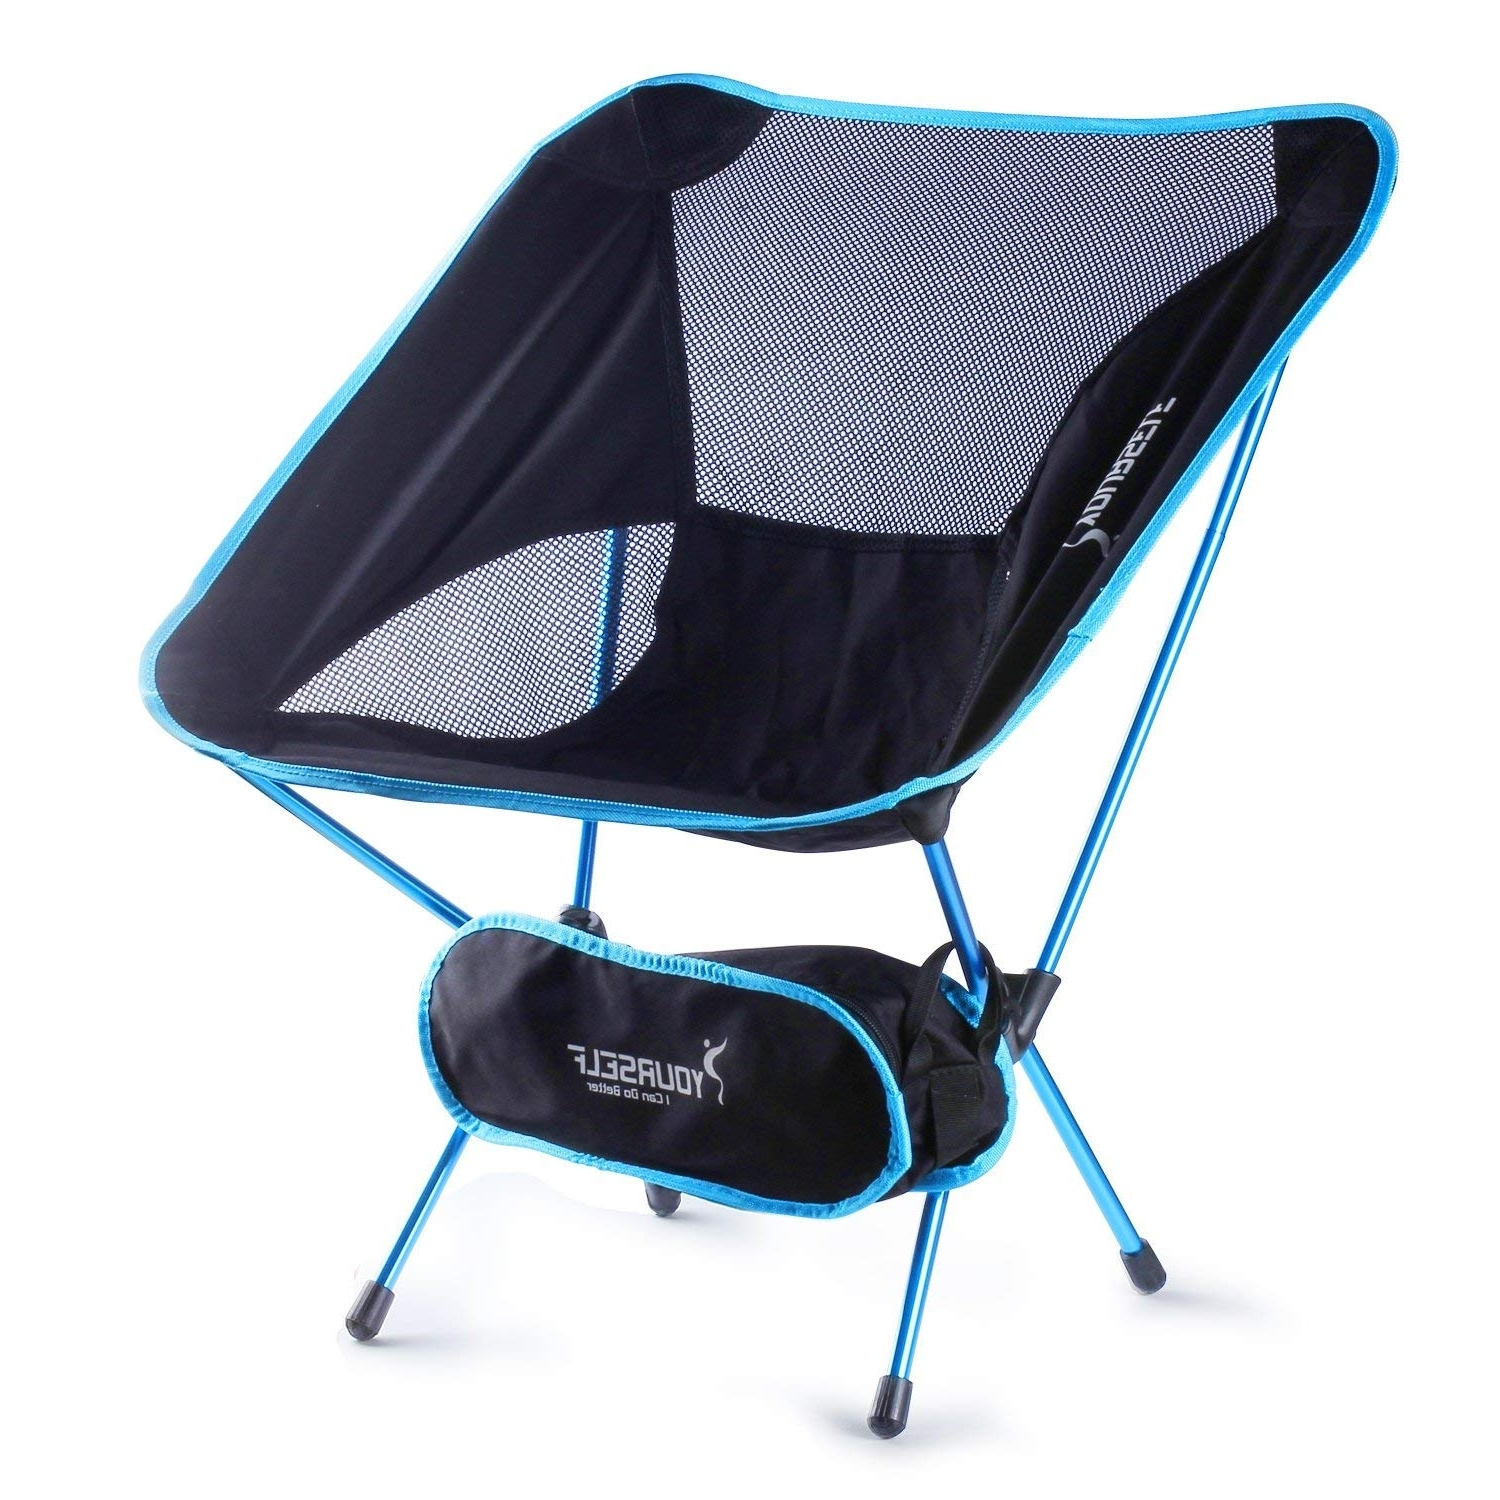 Amazon : Syourself Portable Folding Camping Chair Lightweight Pertaining To Recent Alexa Firecracker Side Chairs (View 9 of 20)